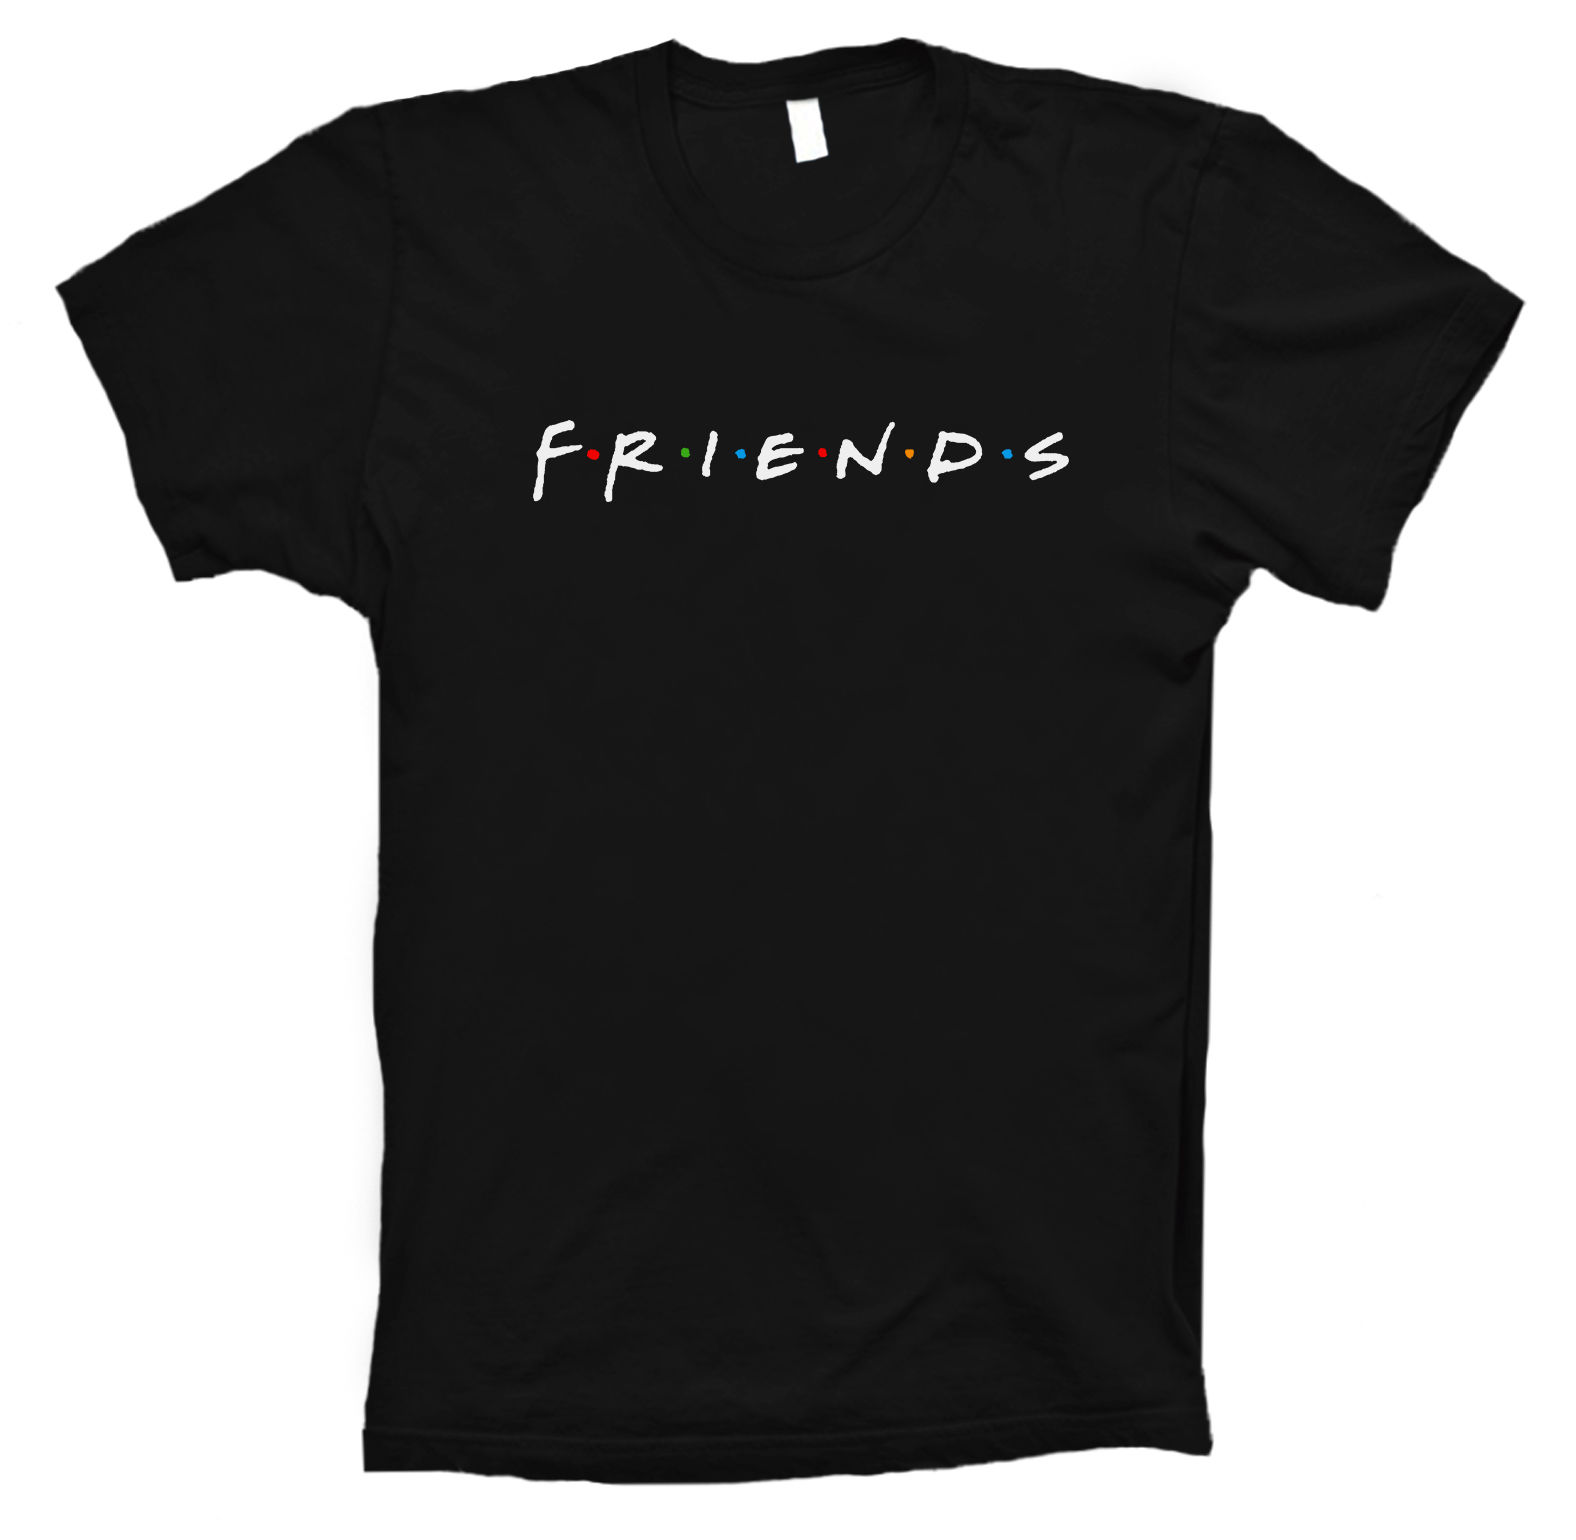 Friends T Shirt Inspired 90S Tv Show Sitcom New Sizes For Men 100% Cotton Print Mens Summer O Neck New 2017 Fashion Hot T Shirt image